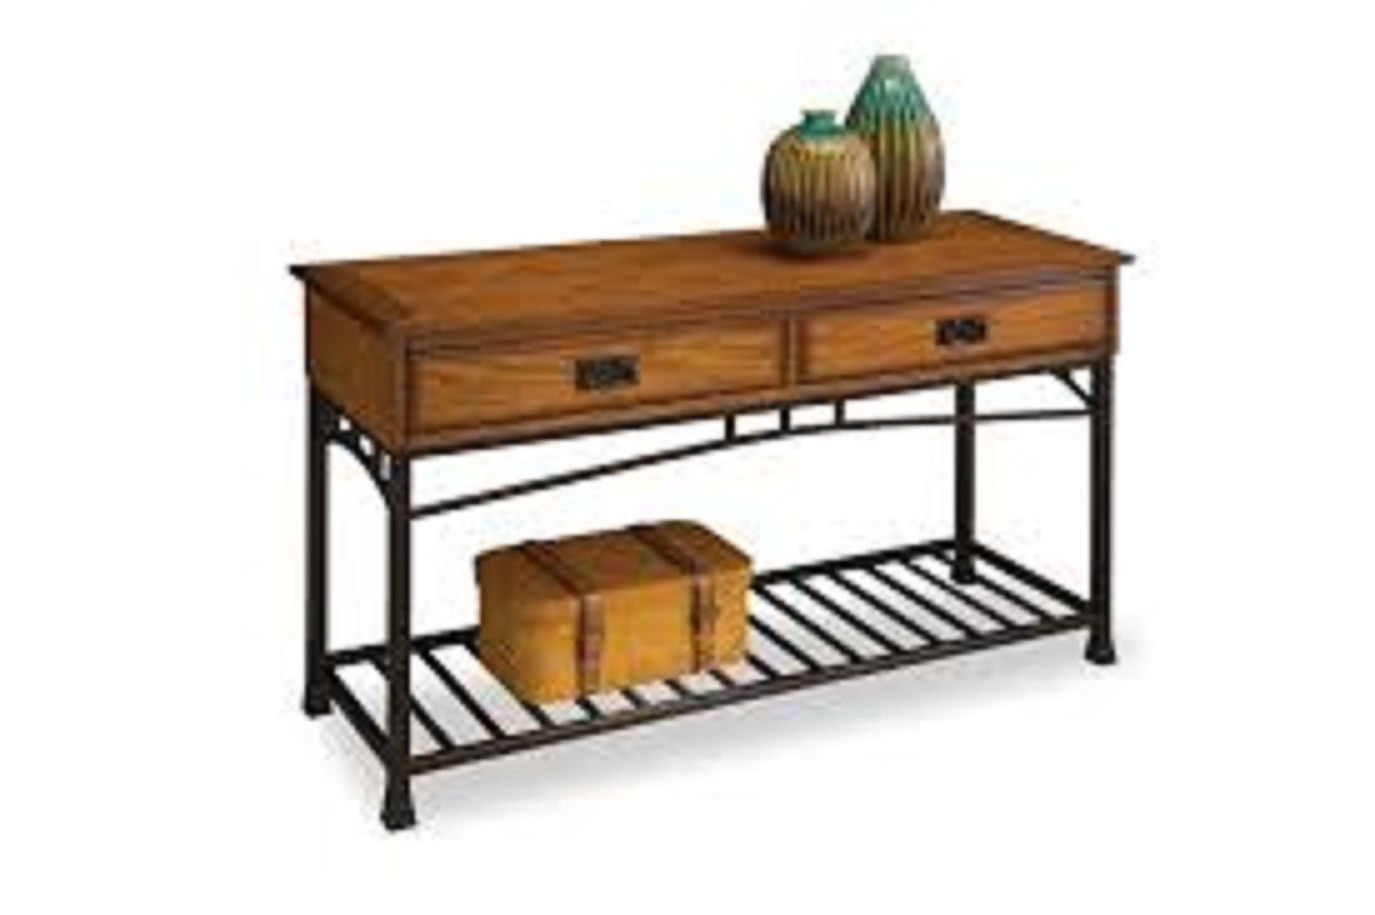 Sofa Table Distressed Oak Finish Storage Shelf Display Rack Living . Full resolution‎  image, nominally Width 1375 Height 915 pixels, image with #9E692D.